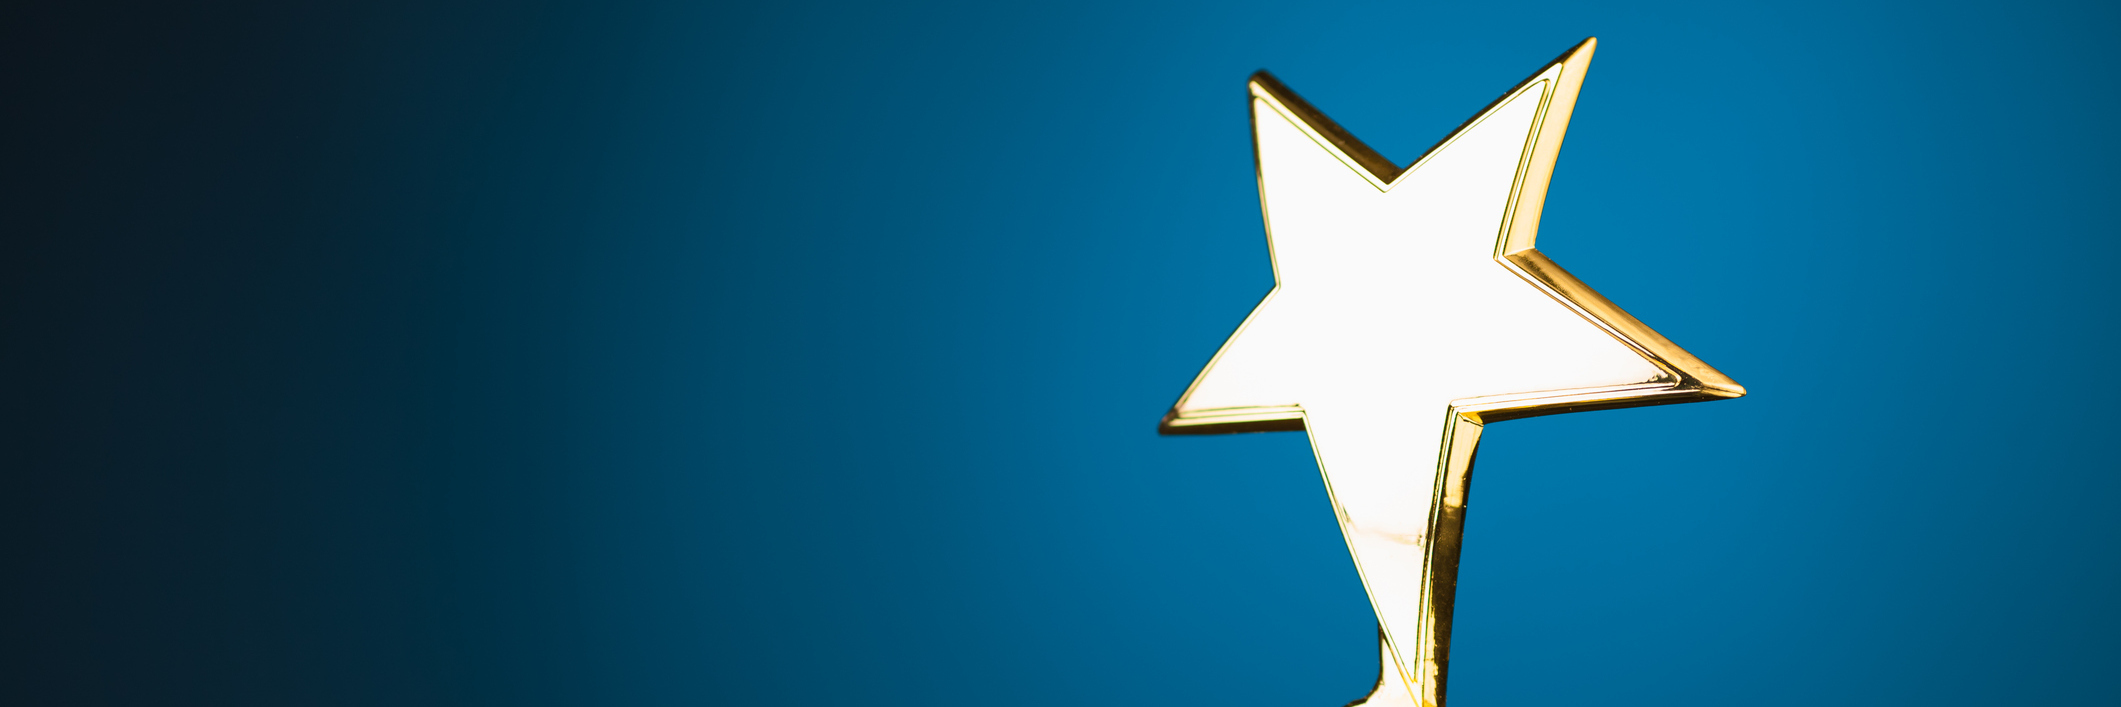 shiny gold star trophy against blue background with copy-space